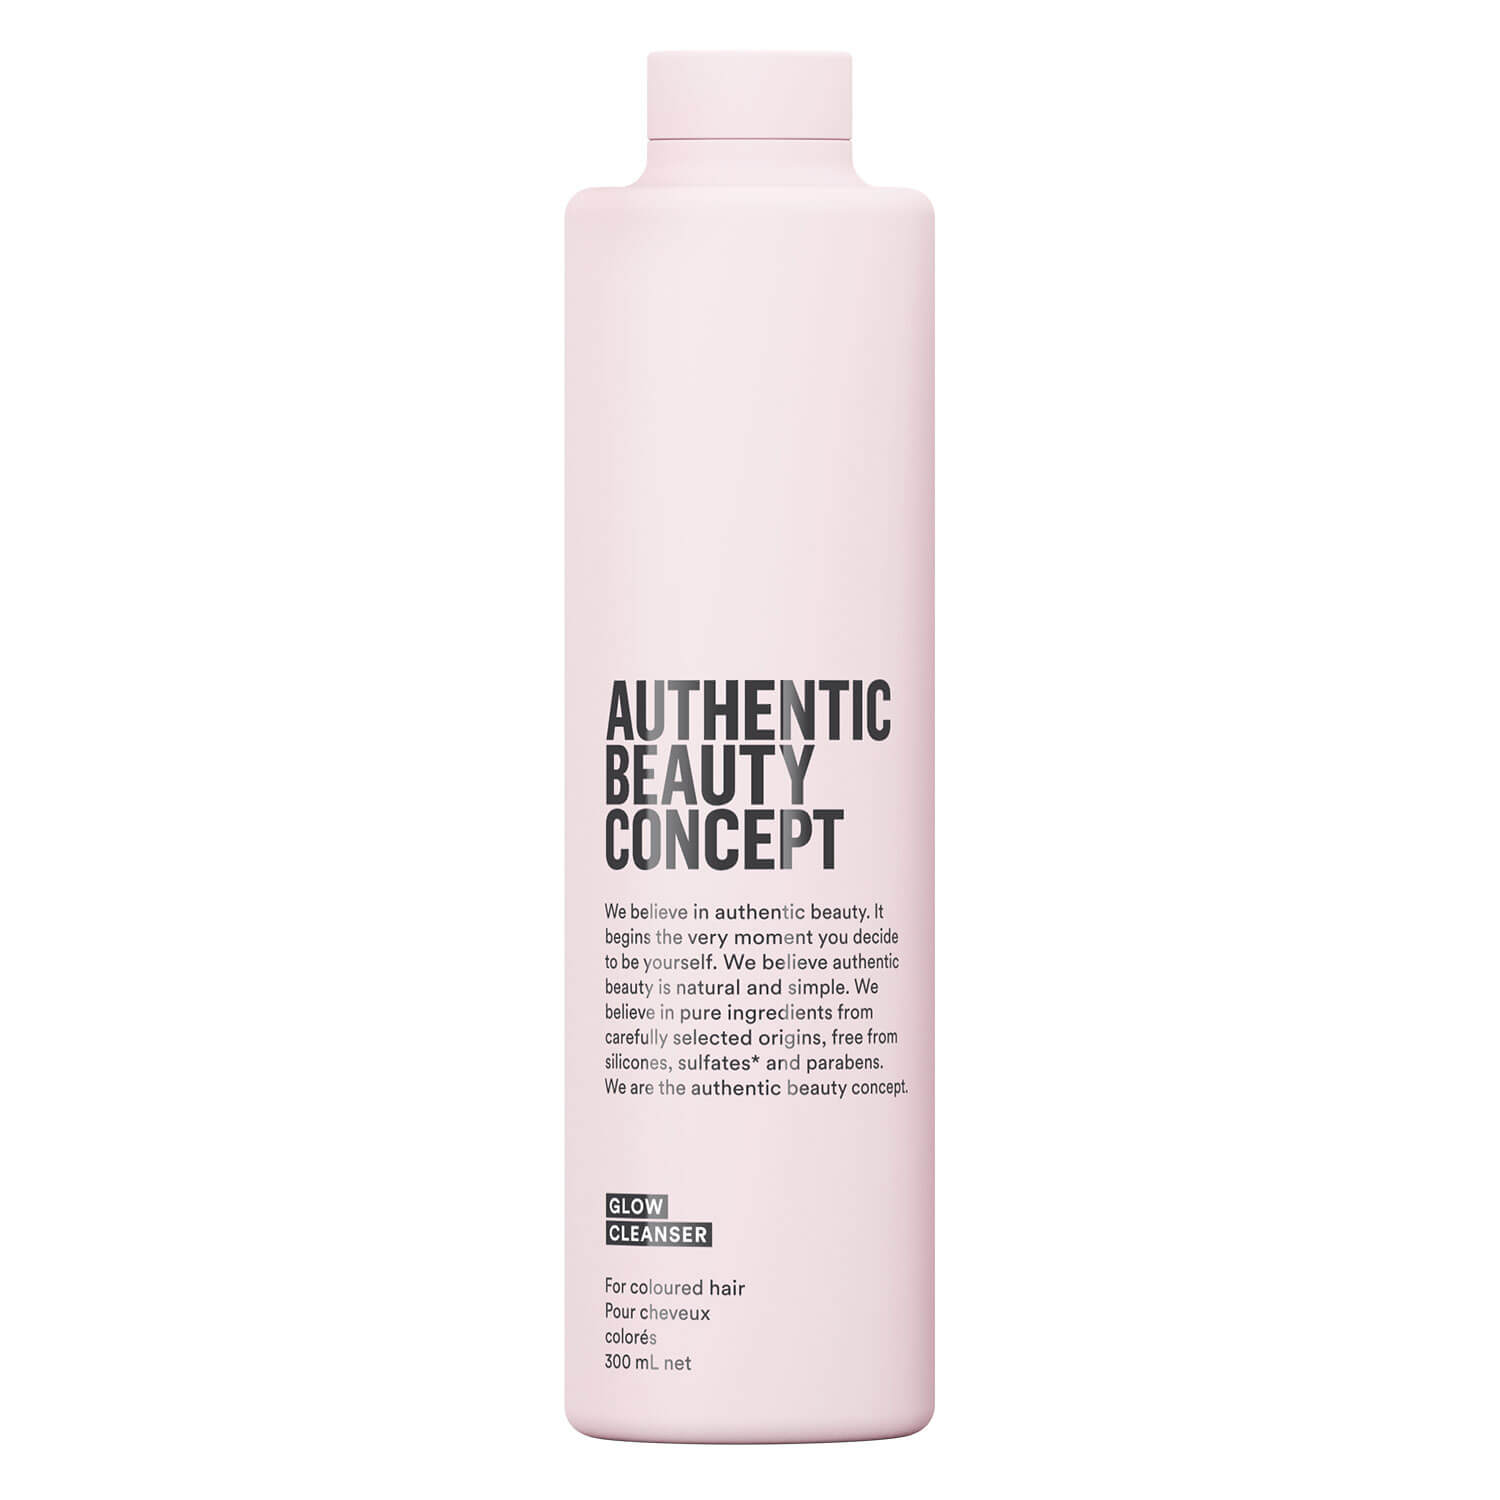 Authentic Beauty Concept - Glow Cleanser - 300ml